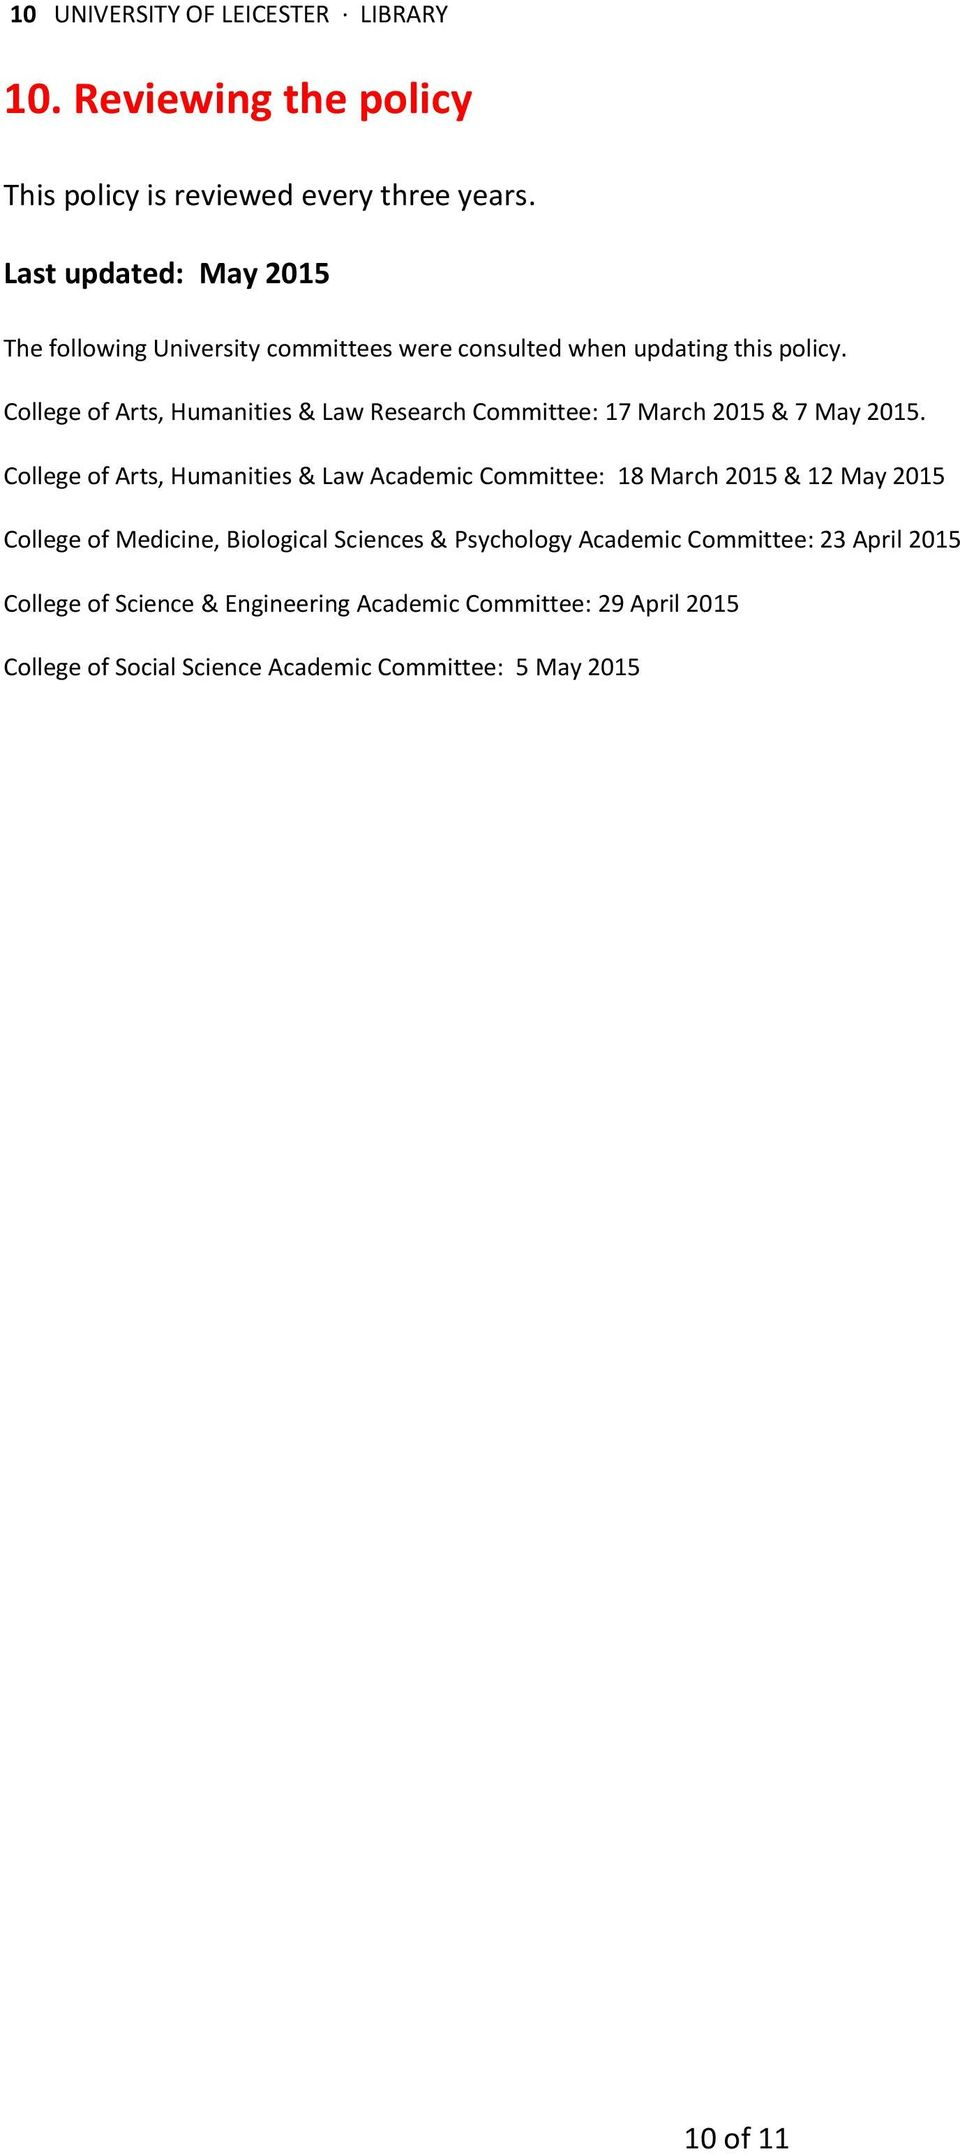 College of Arts, Humanities & Law Research Committee: 17 March 2015 & 7 May 2015.